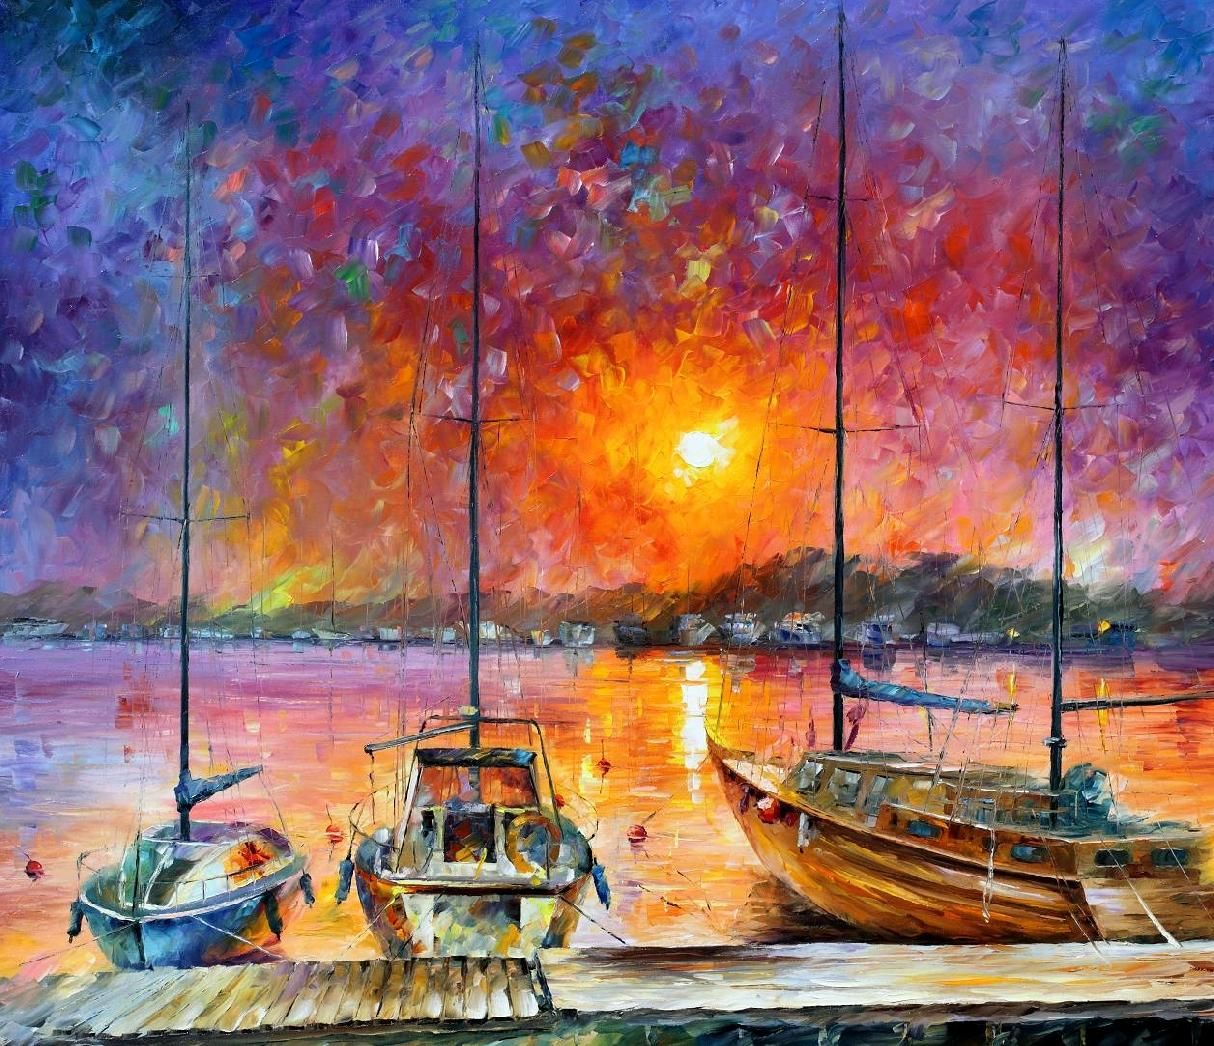 Ships Of Freedom Palette Knife Oil Painting On Canvas By Leonid Afremov Size 36 X30 Art Painting Oil Painting Freedom Art